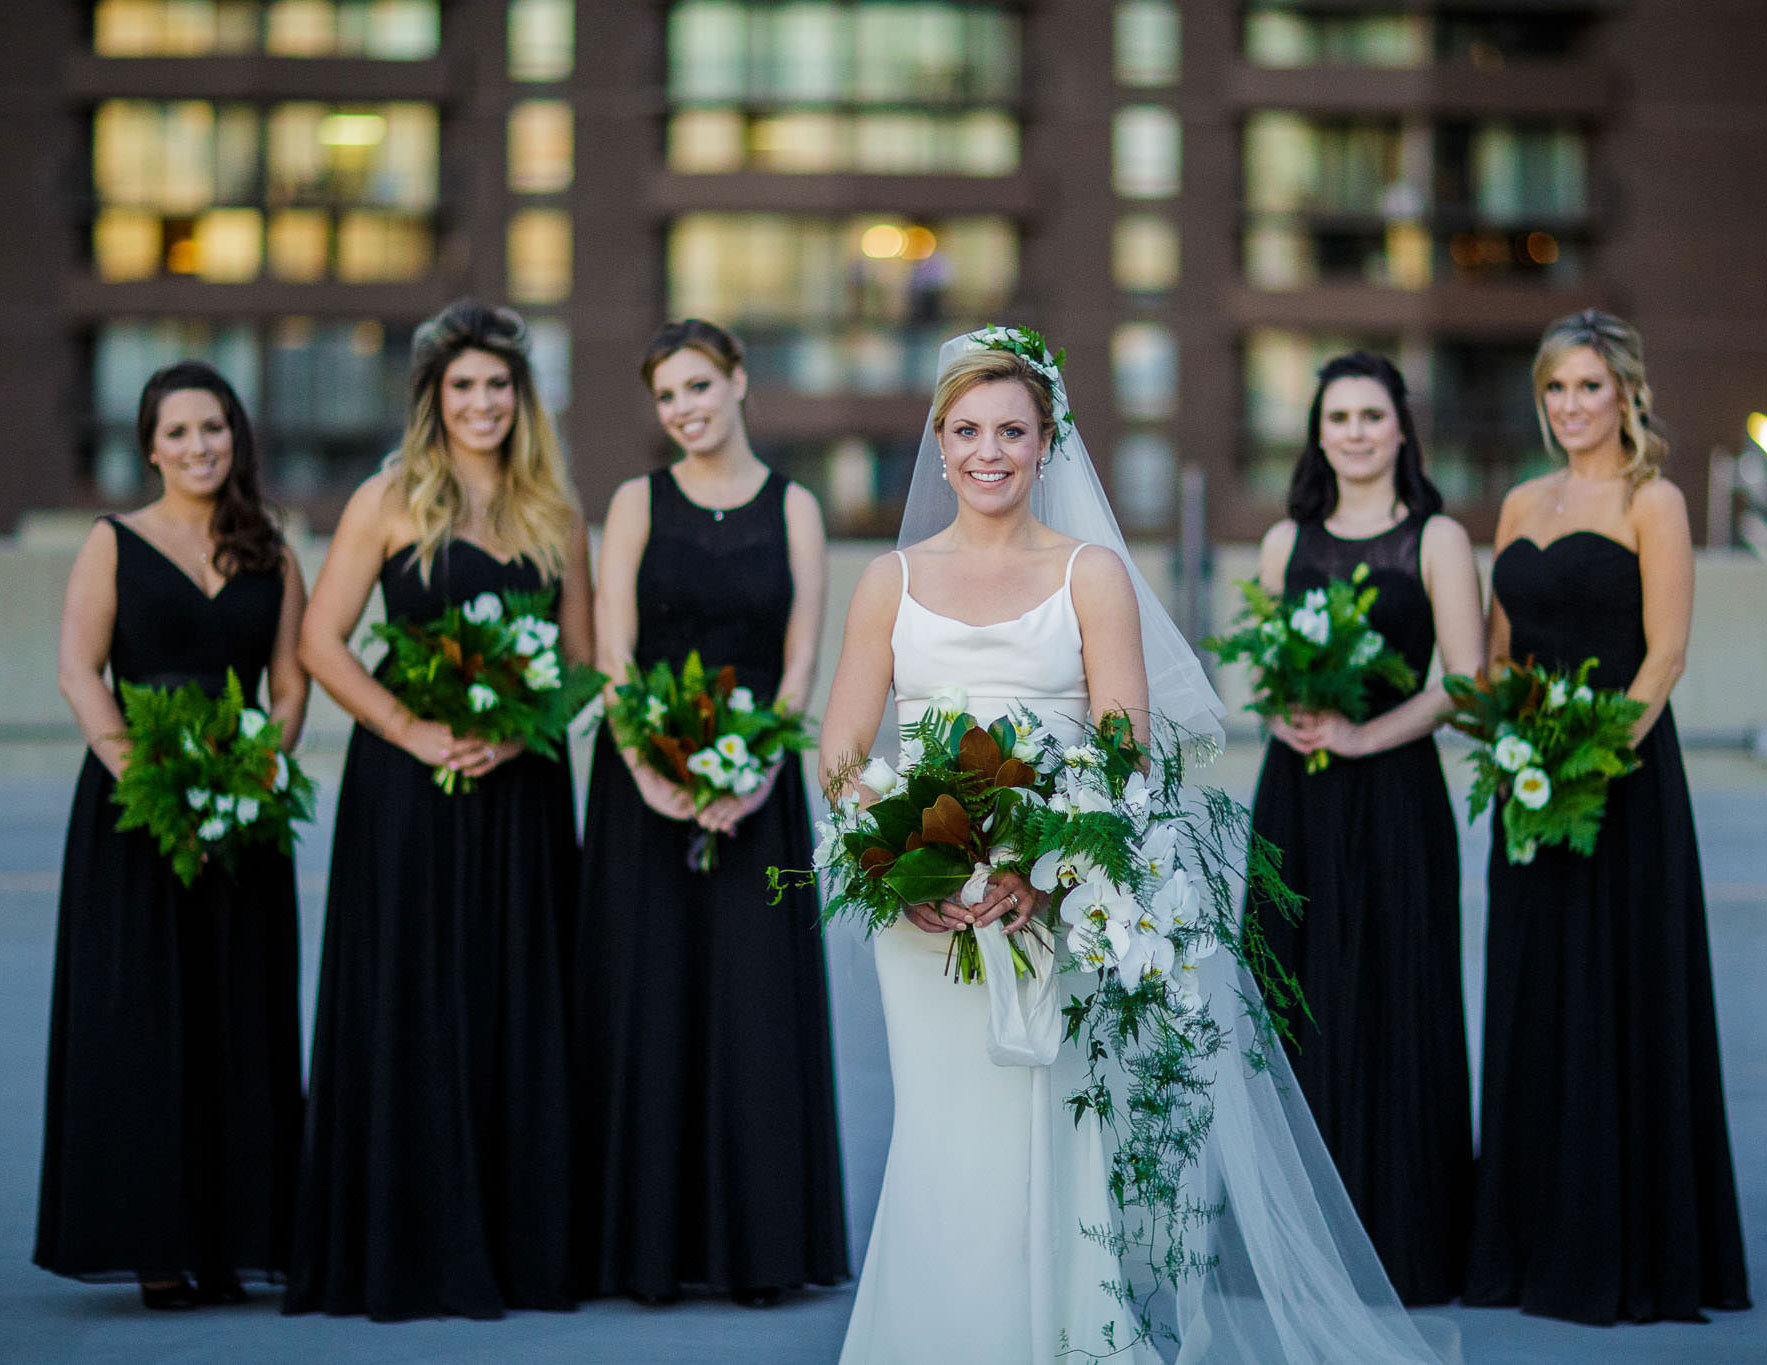 A Minimalist Industrial Wedding in Denver